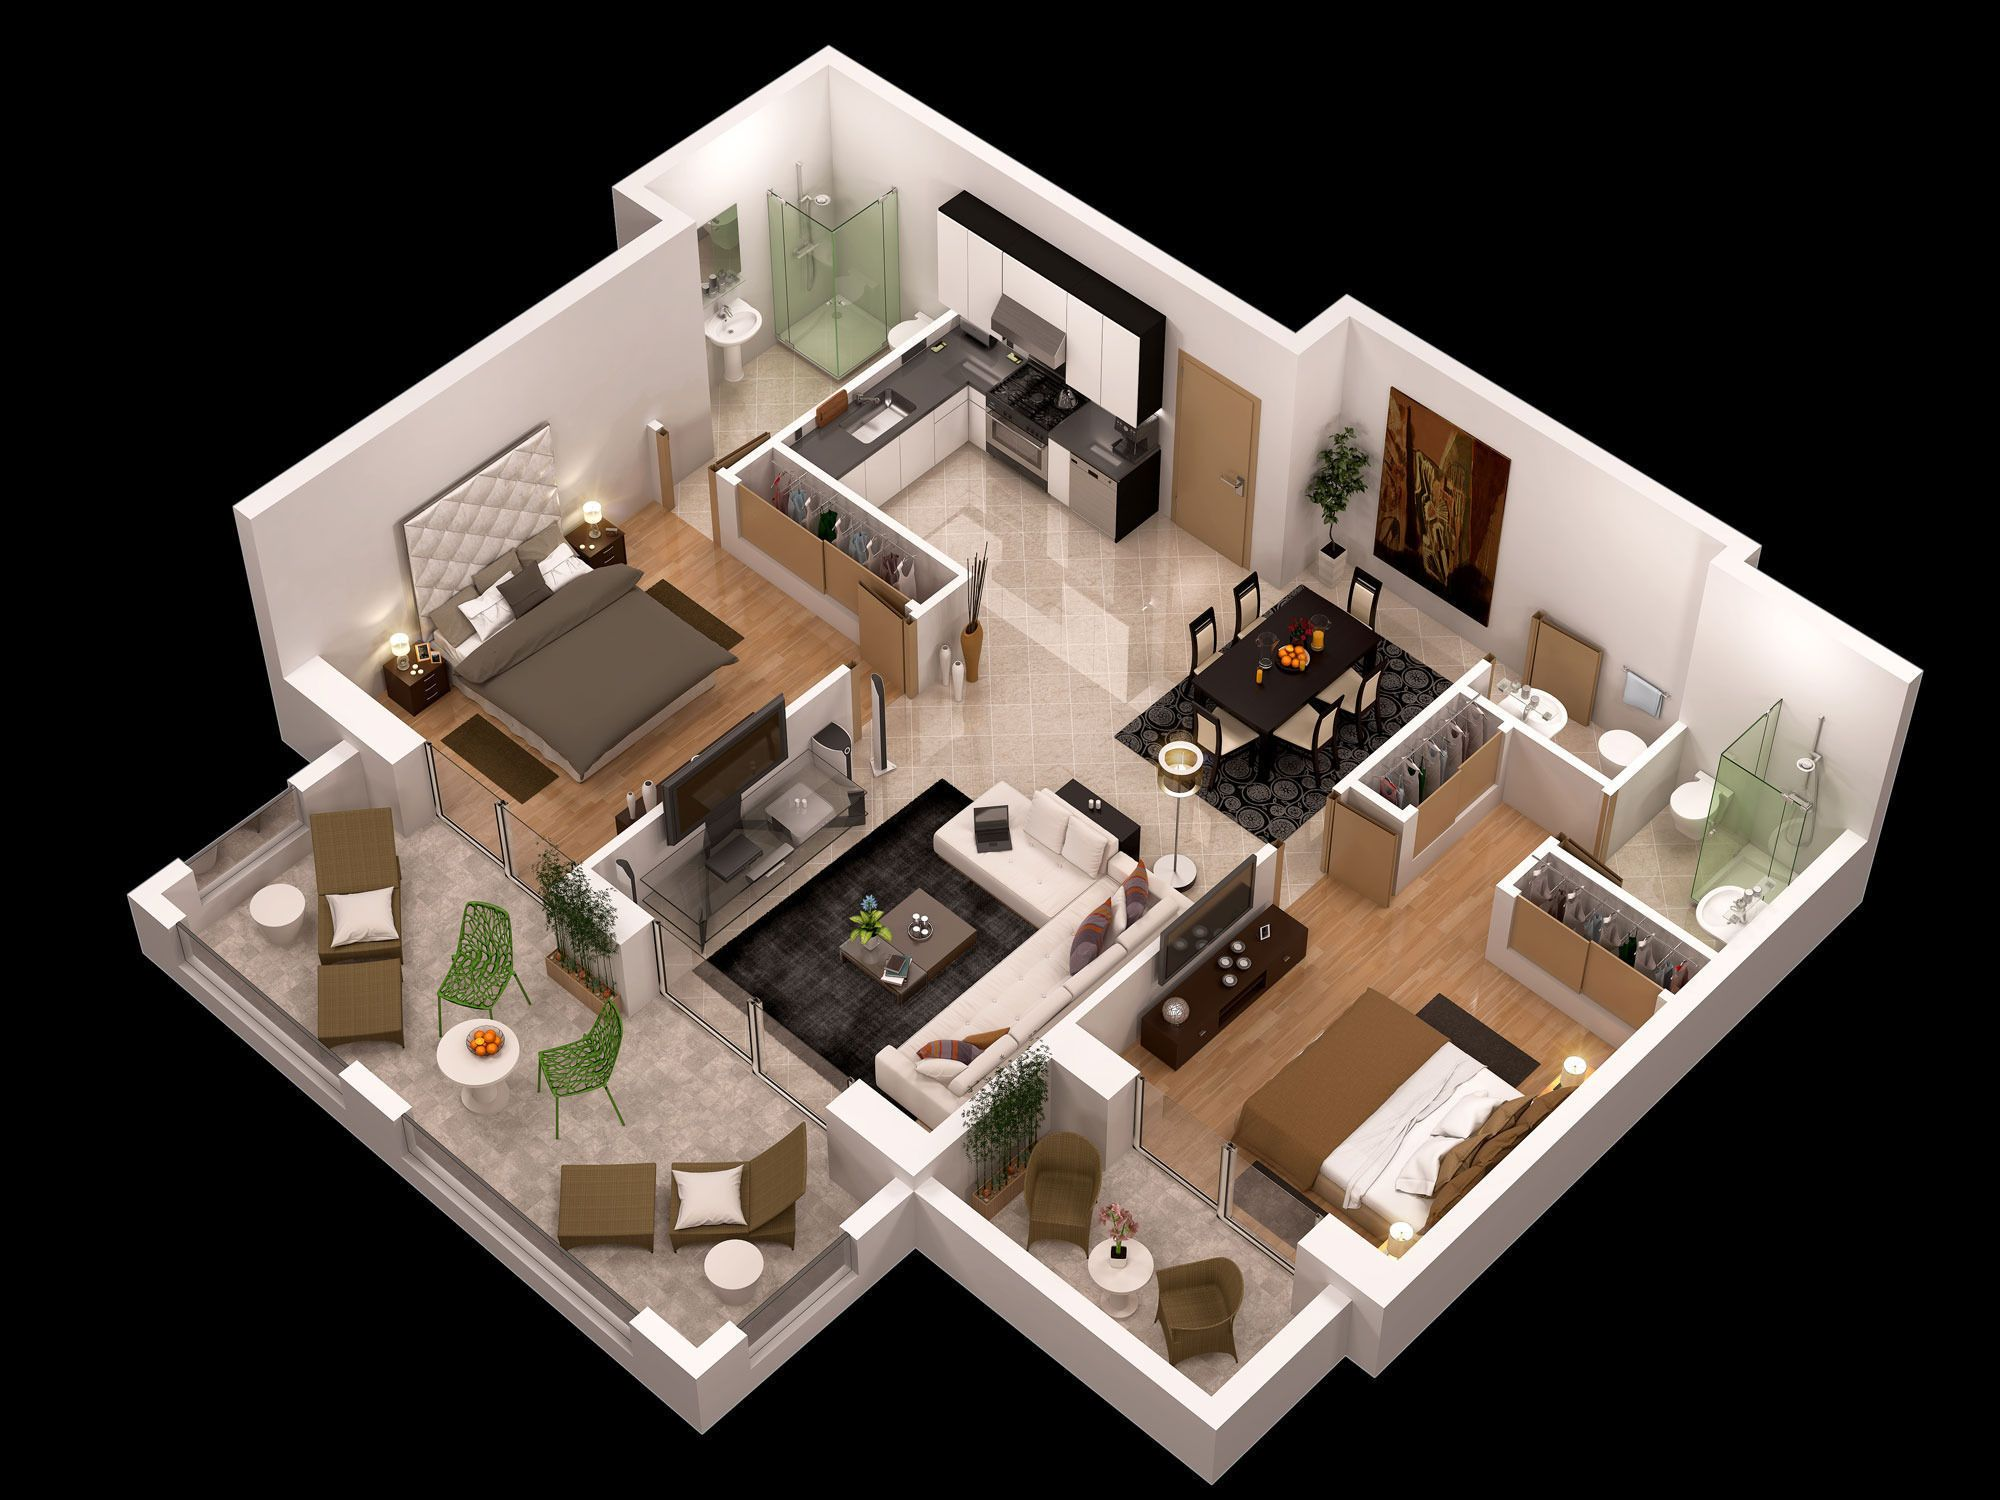 detailed floor plan 3d model max - 3d Floor Plan Free